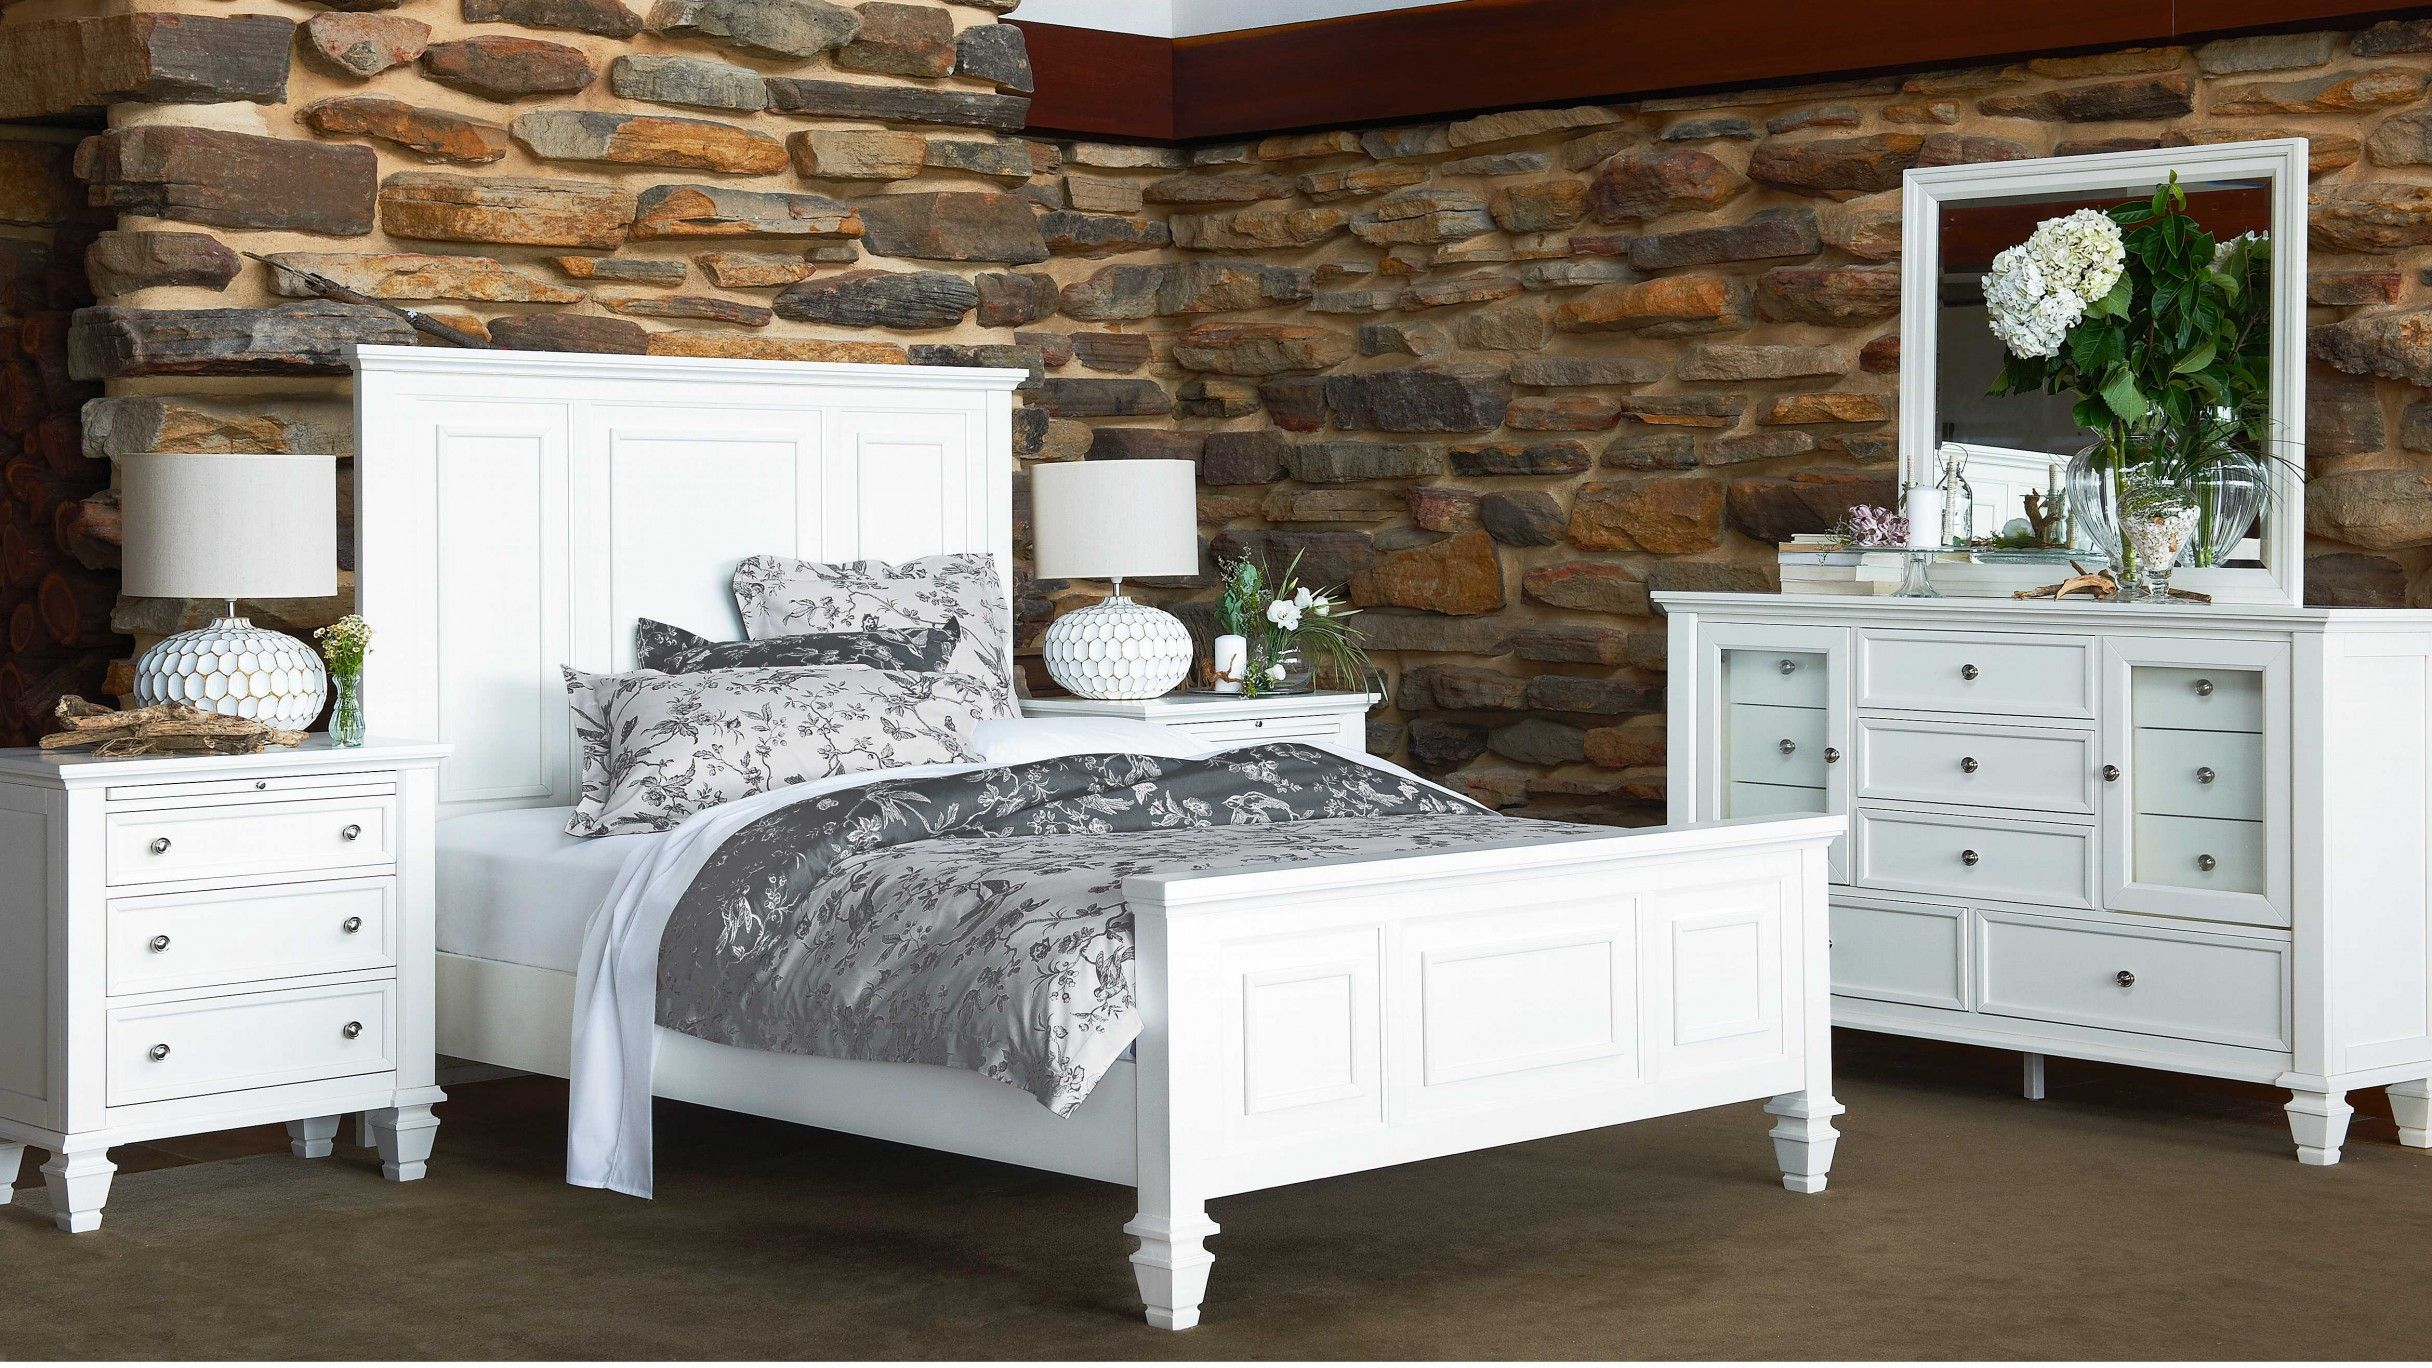 Glenmore 4 Piece Queen Bedroom Suite With Dresser